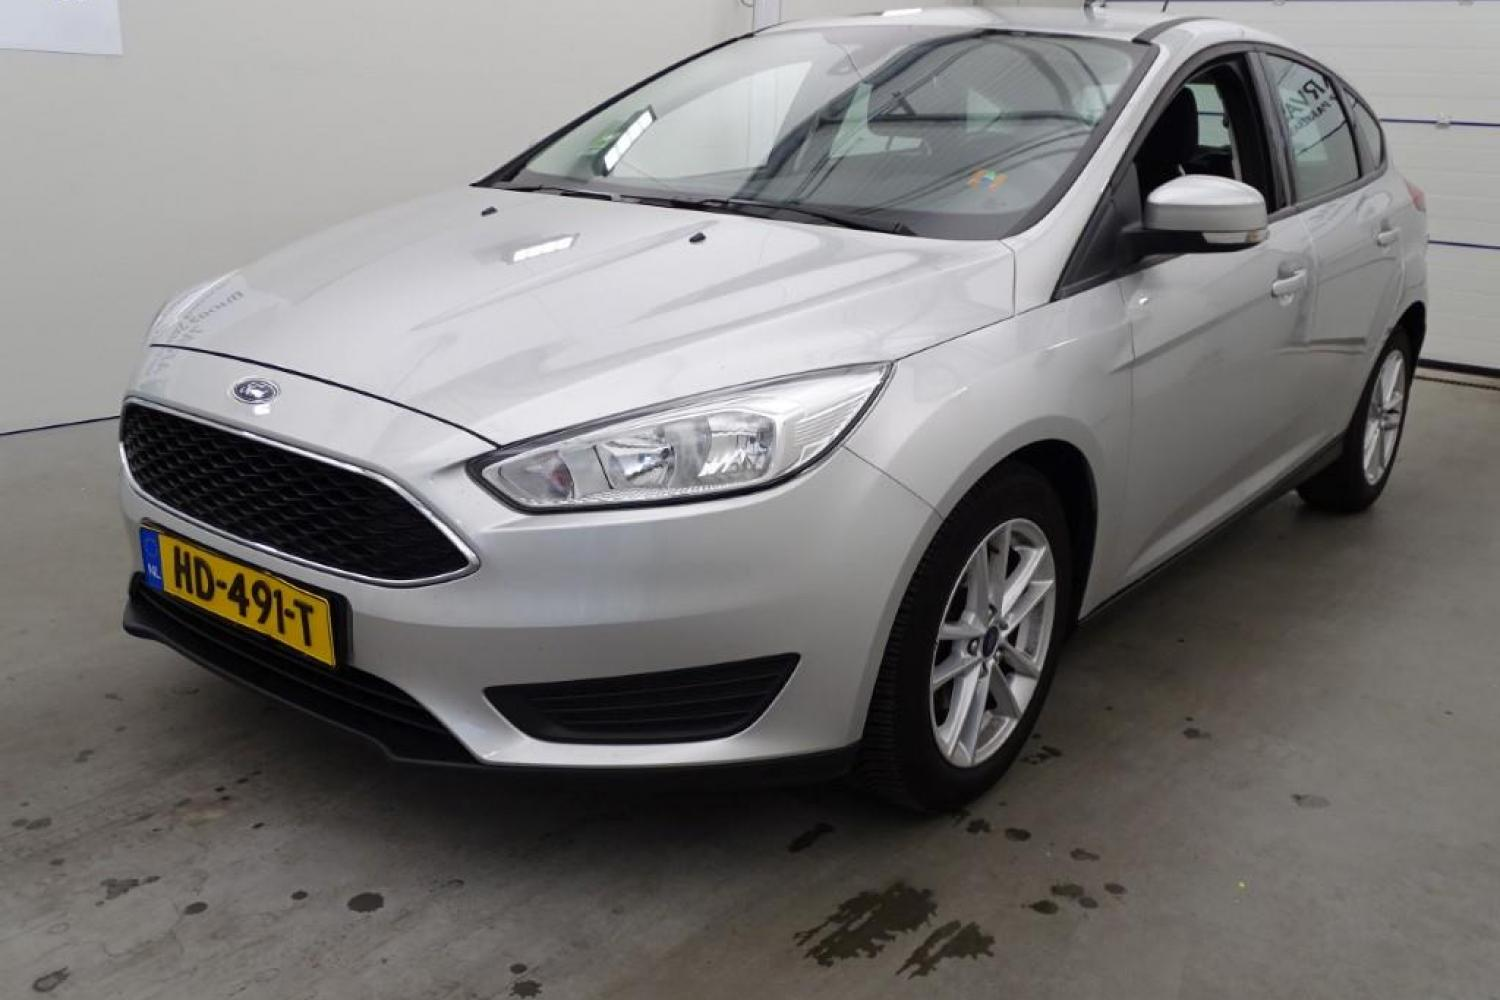 Ford Focus 1.0 EB 100 Trend 5d